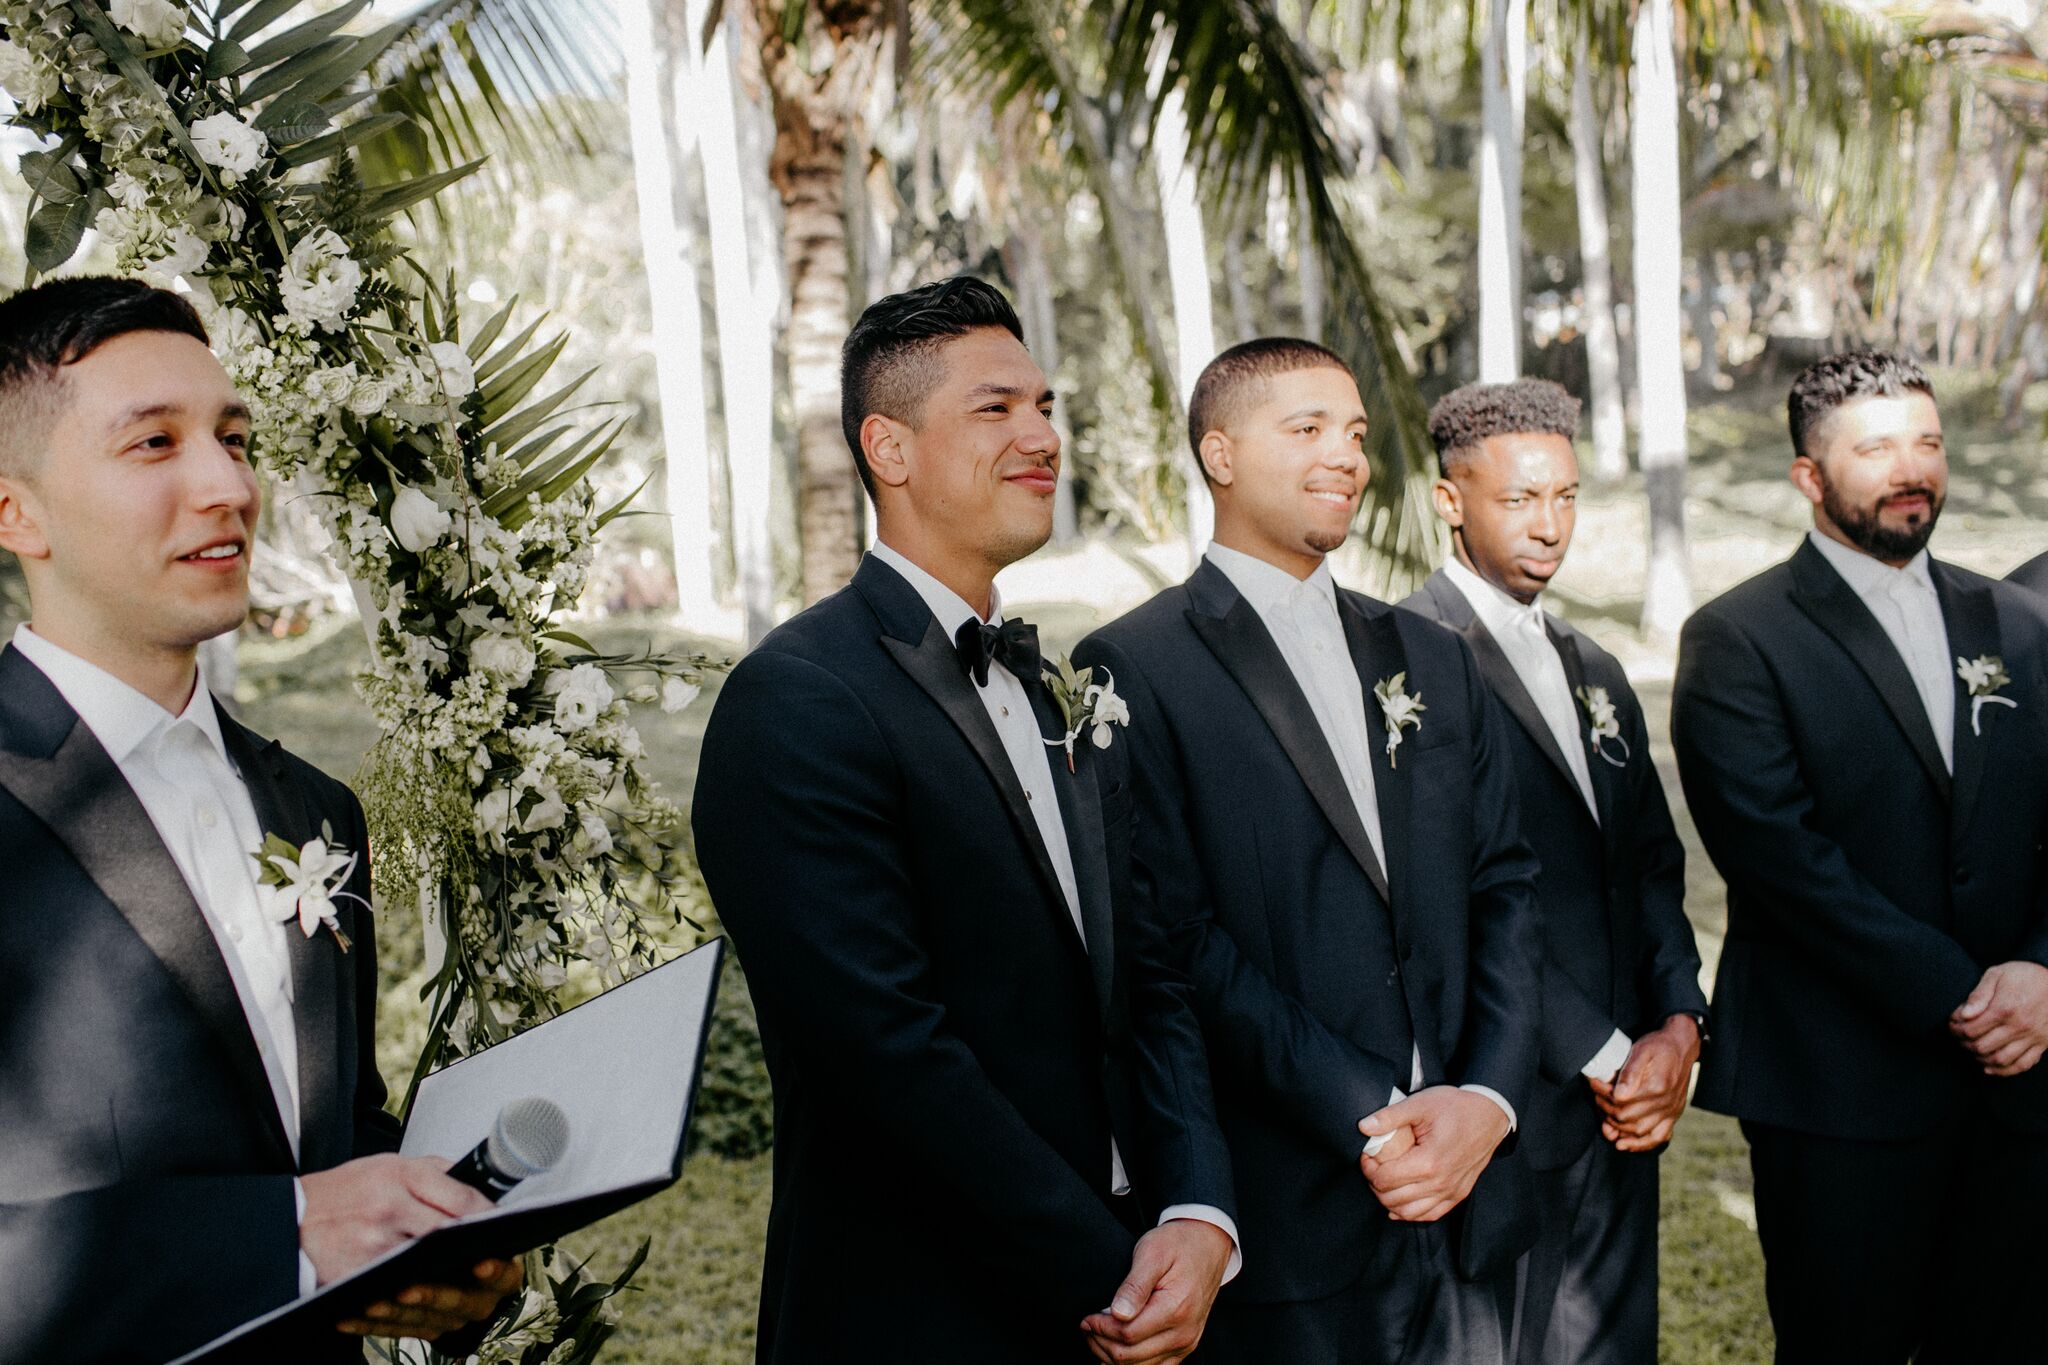 alexandra_celia_sayulita_wedding_britt_julio-1456_preview.jpg